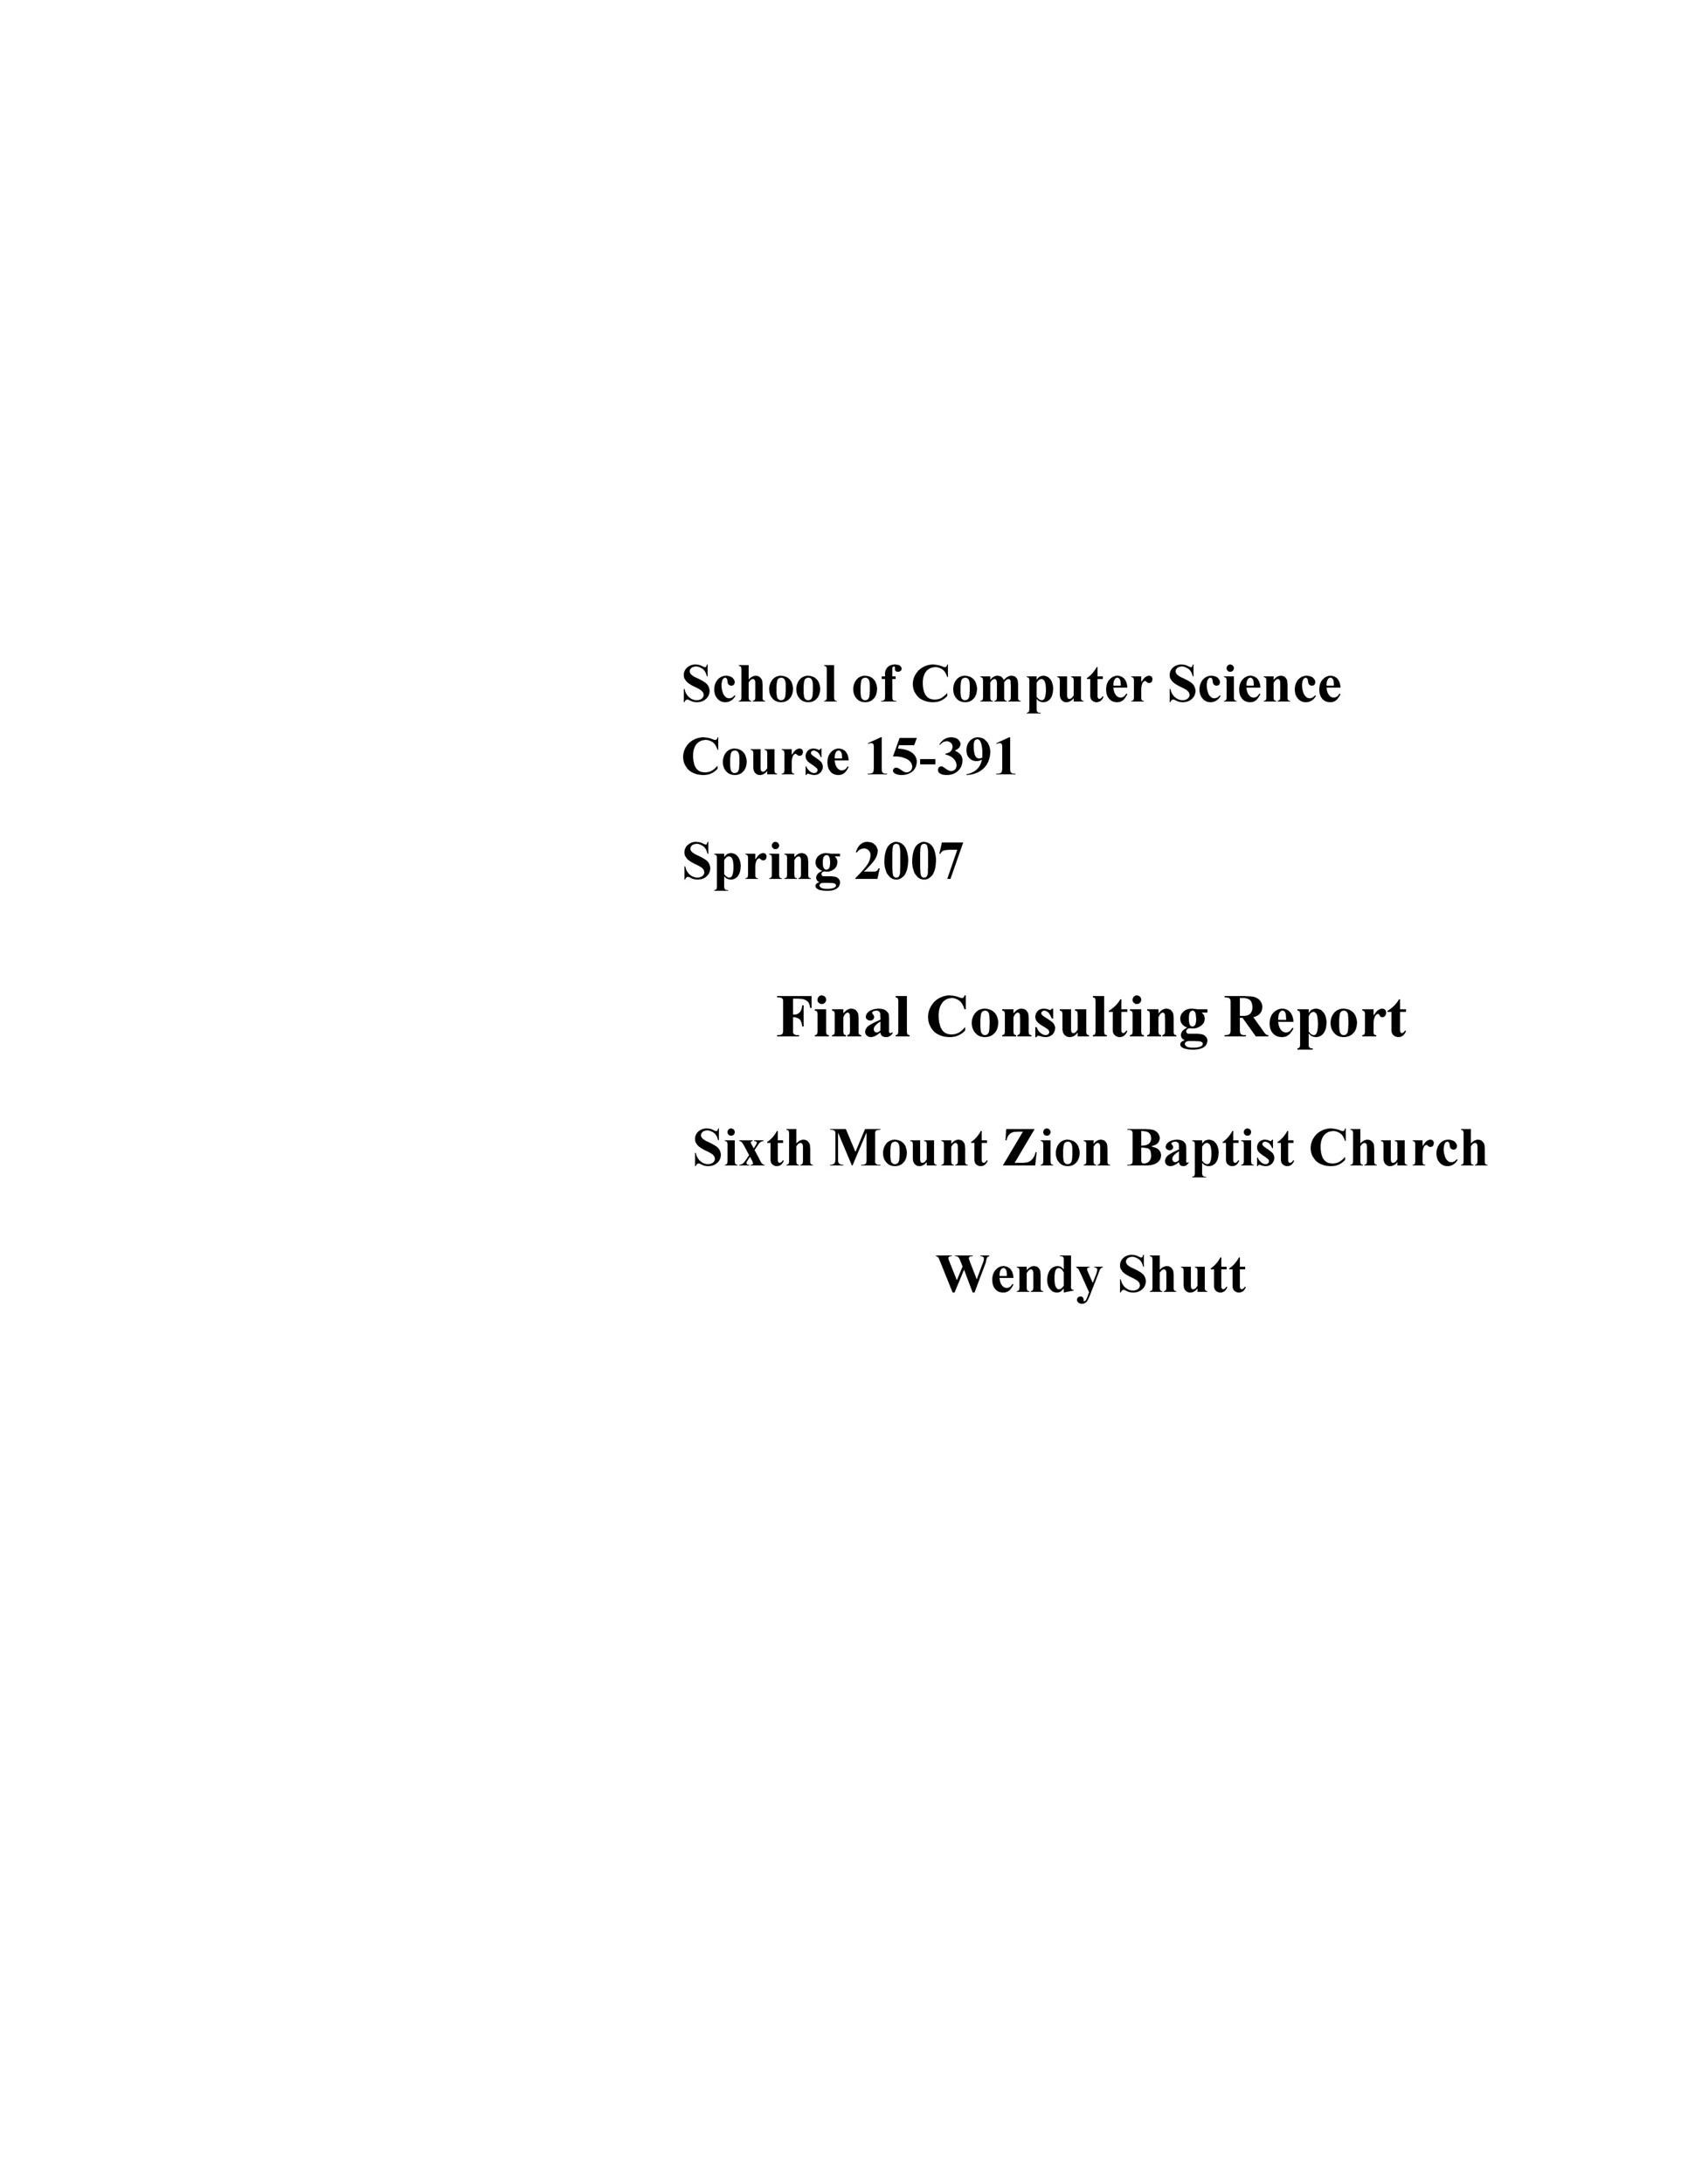 Free consulting report template 50